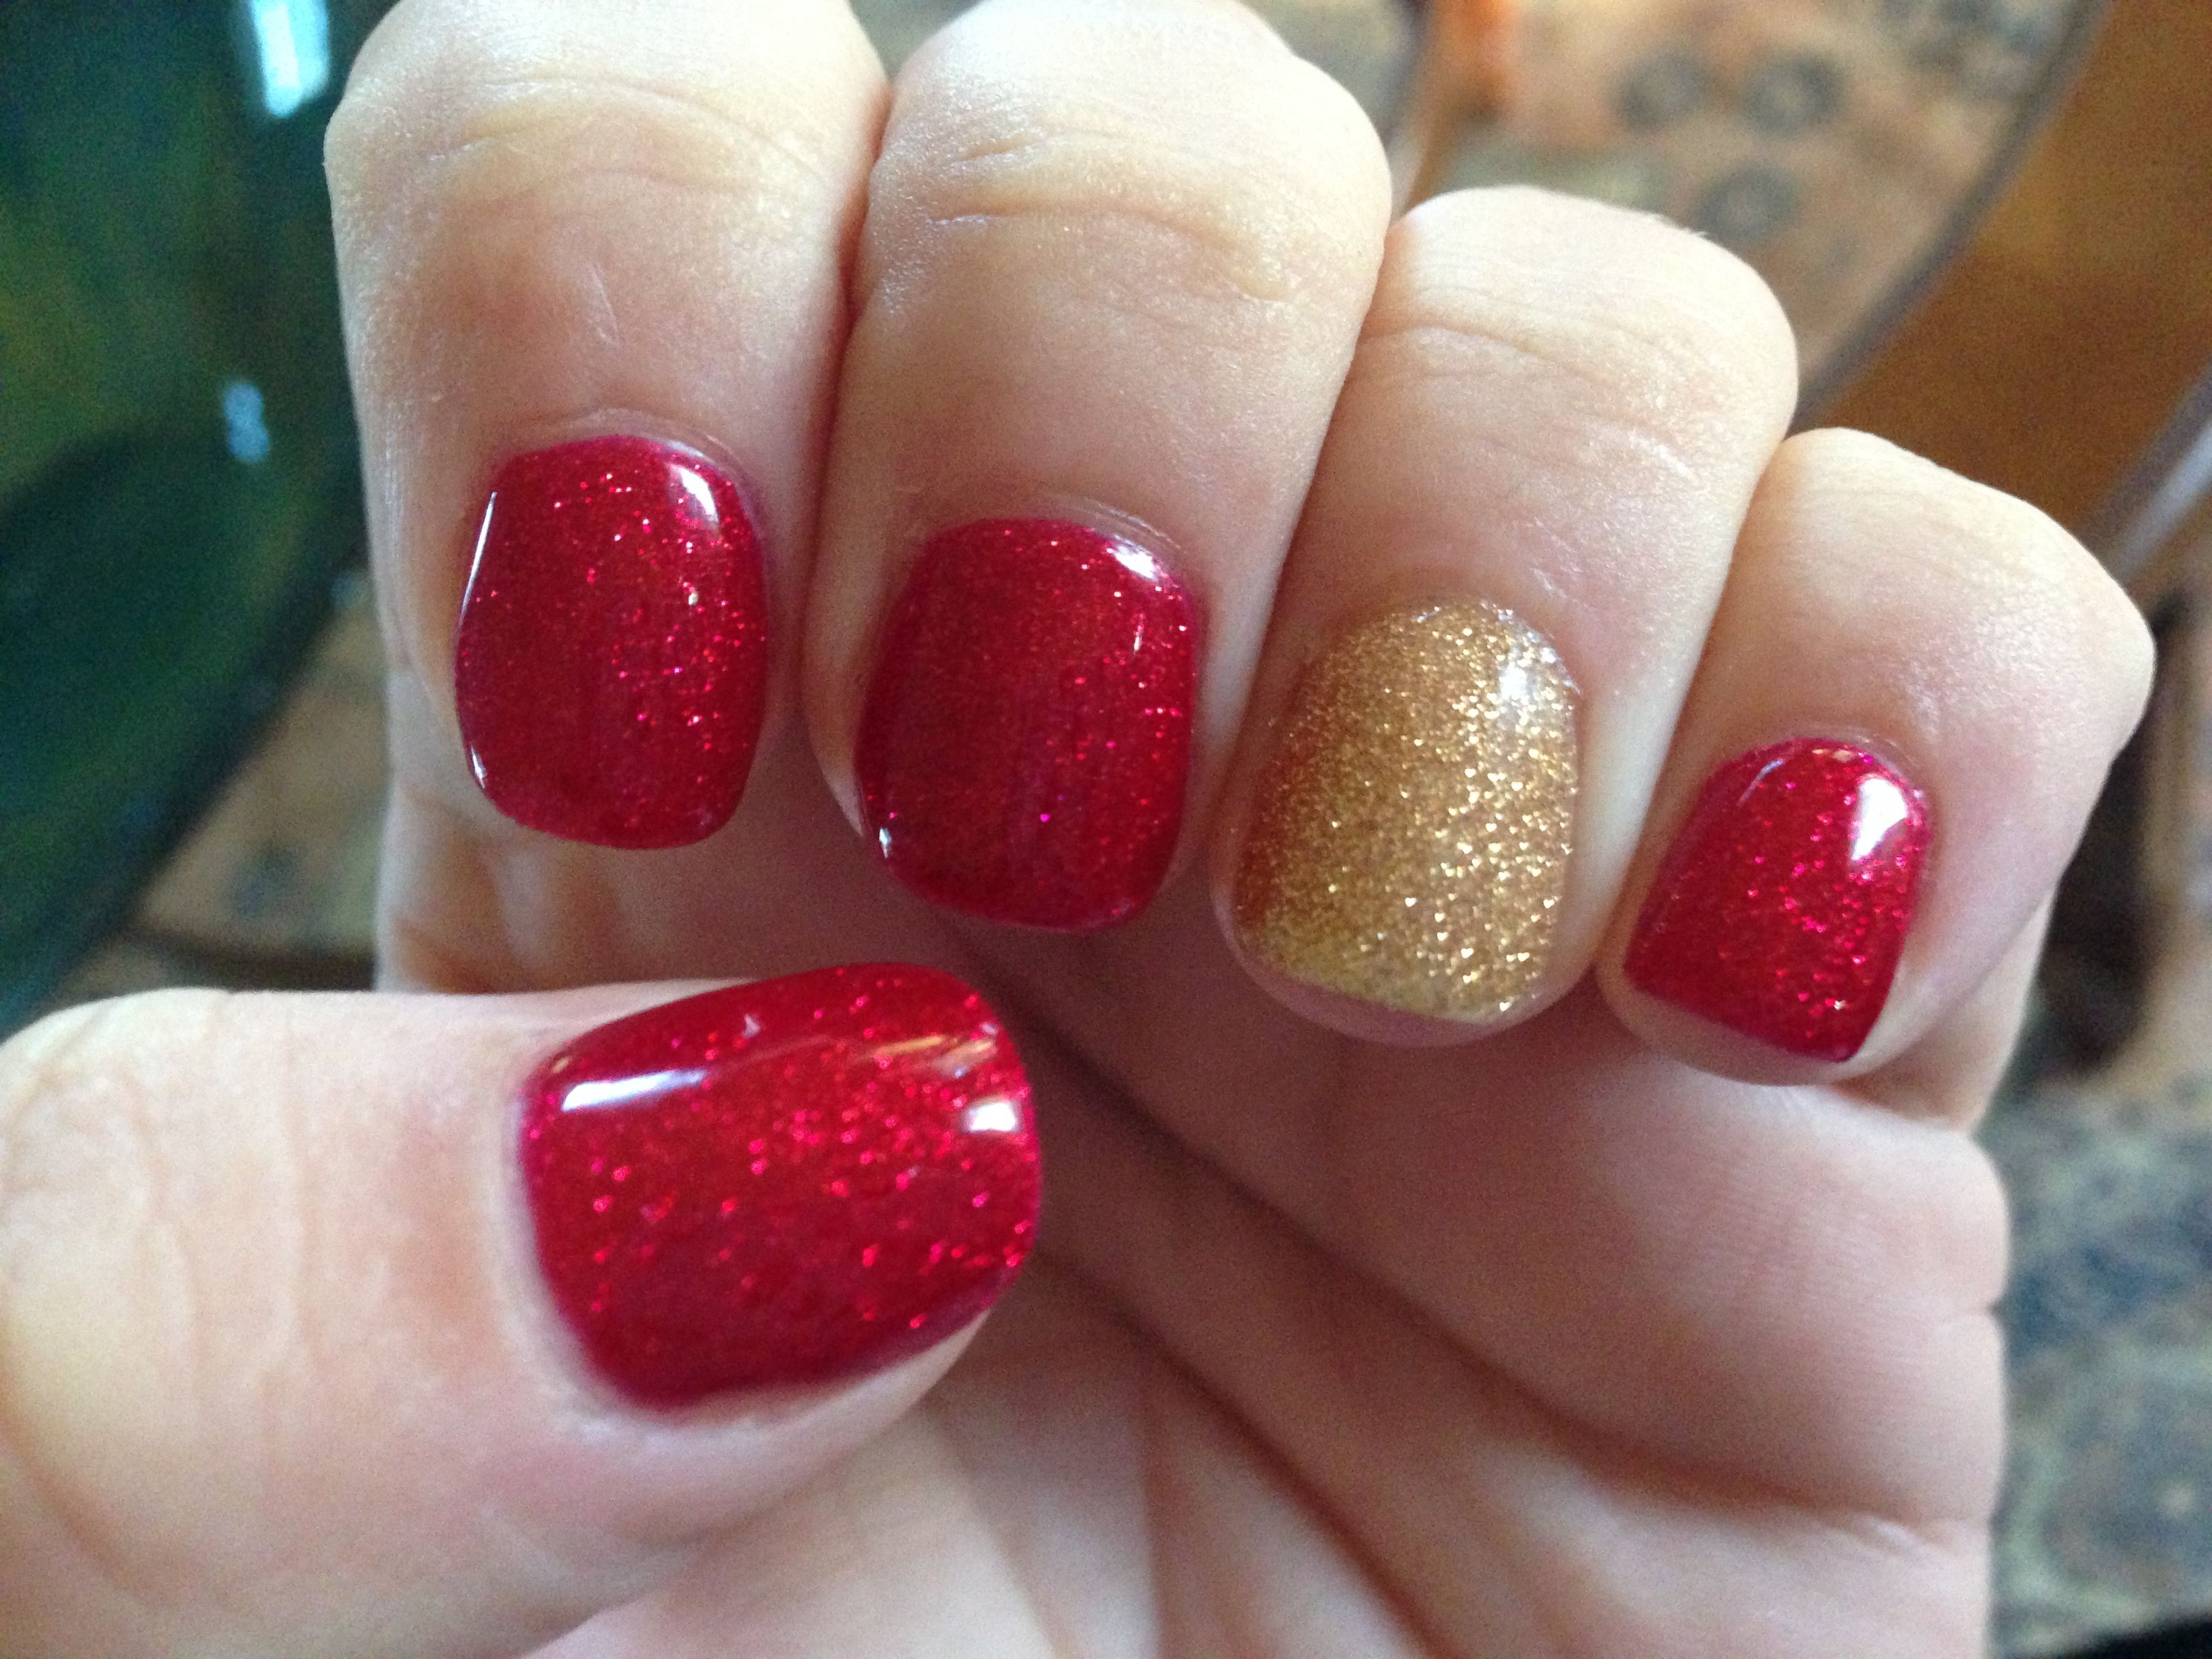 My Cnd Shellac Christmas Nails By Christy Clow Mynailtechisbetterthanyours Christmas Shellac Nails Holiday Nails Holiday Nail Colors